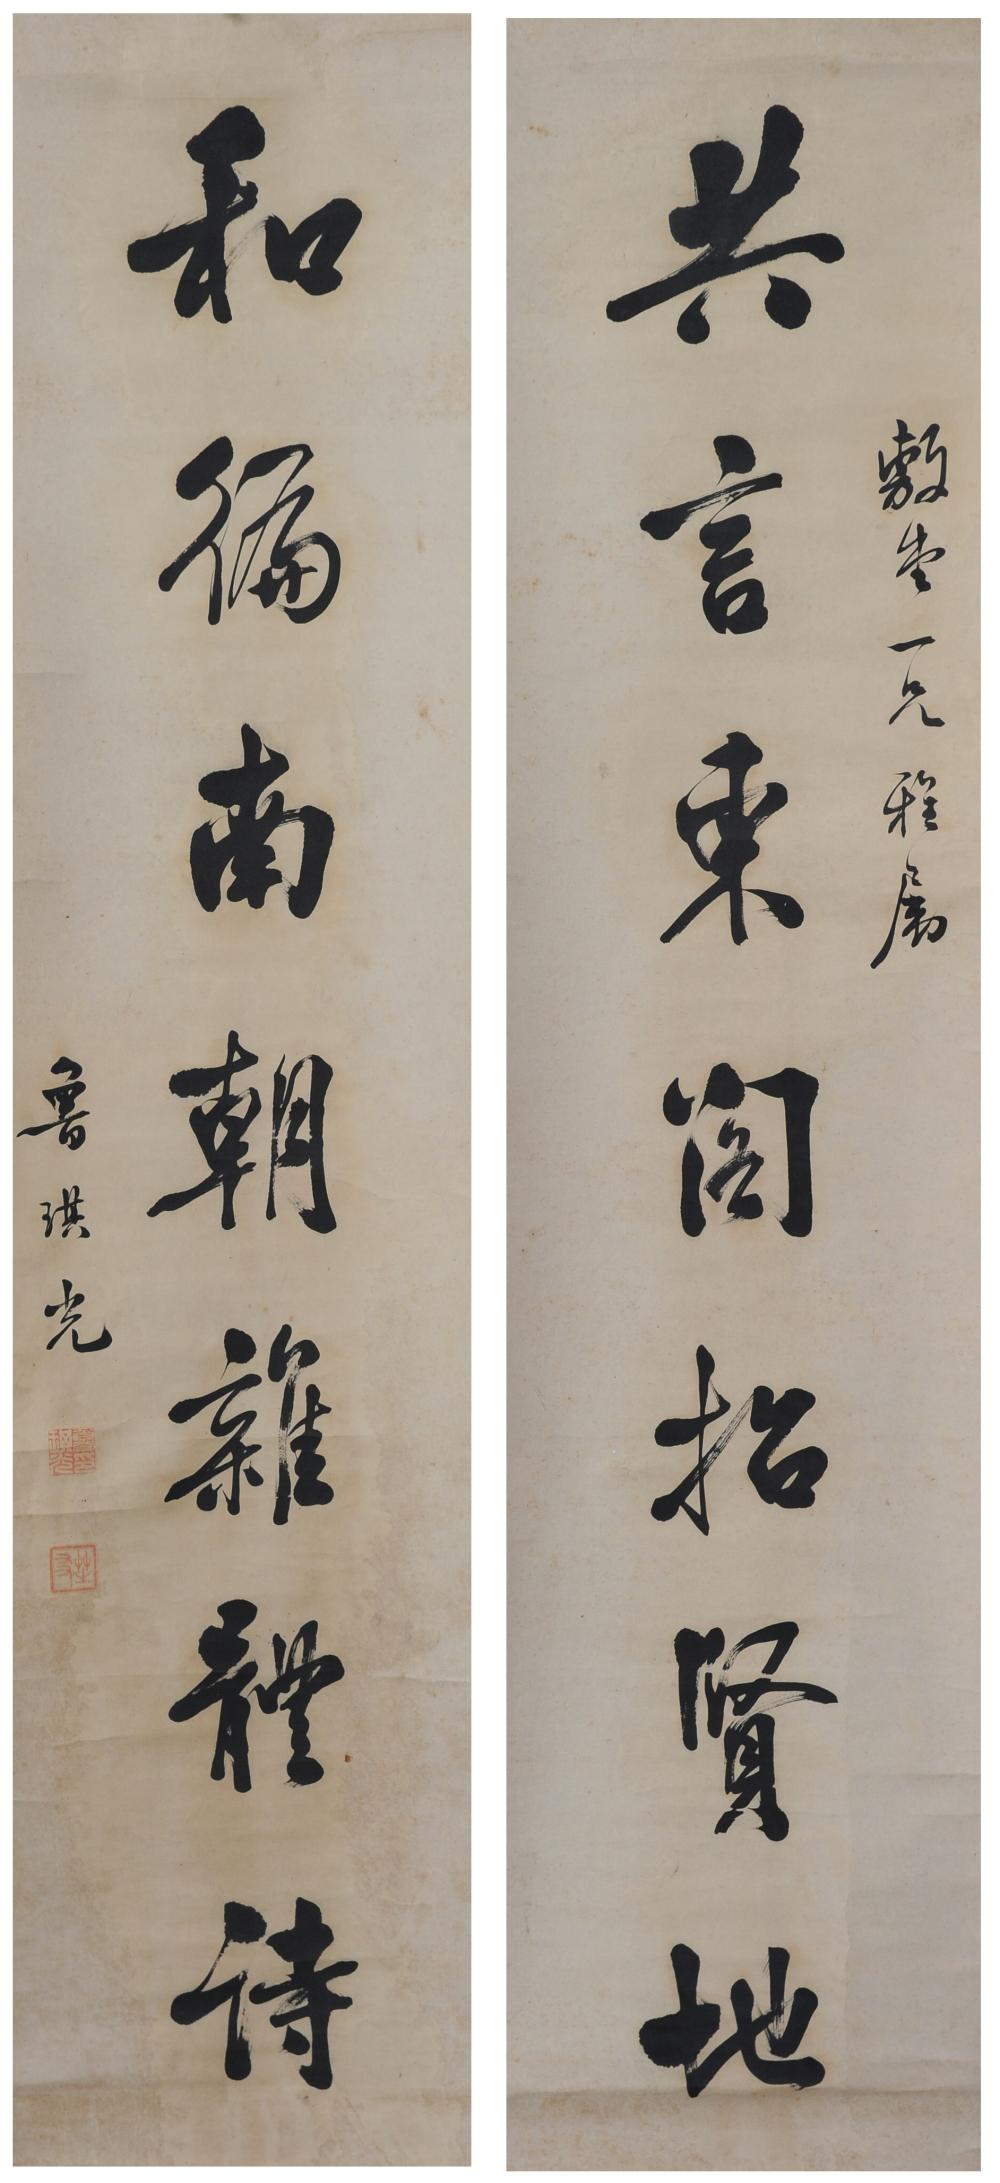 CHINESE CALLIGRAPHY COUPLET BY LU QIGUANG